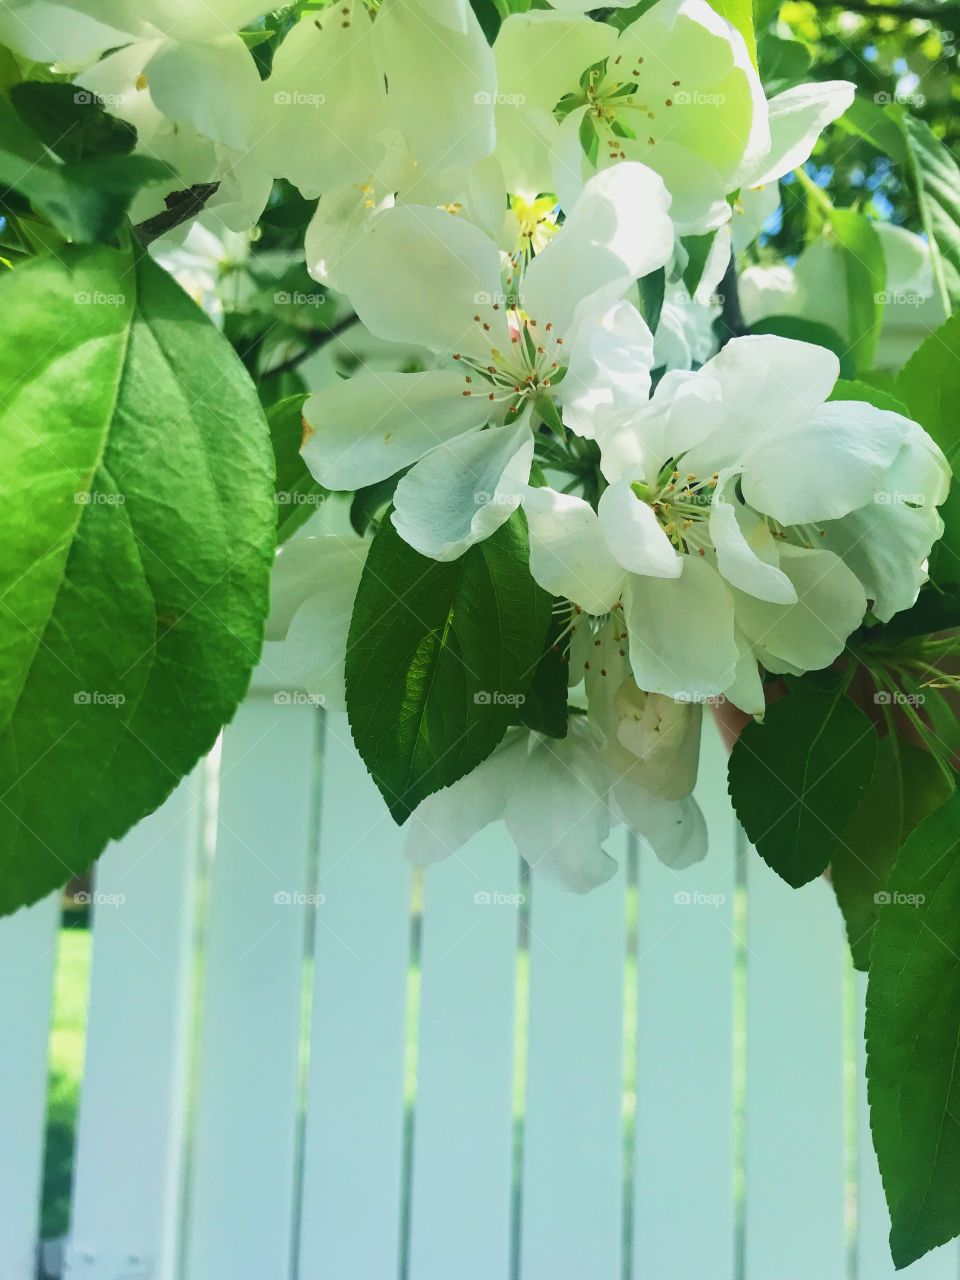 White flowers hanging on a tree paired with bright green leaves in front of a white fence.